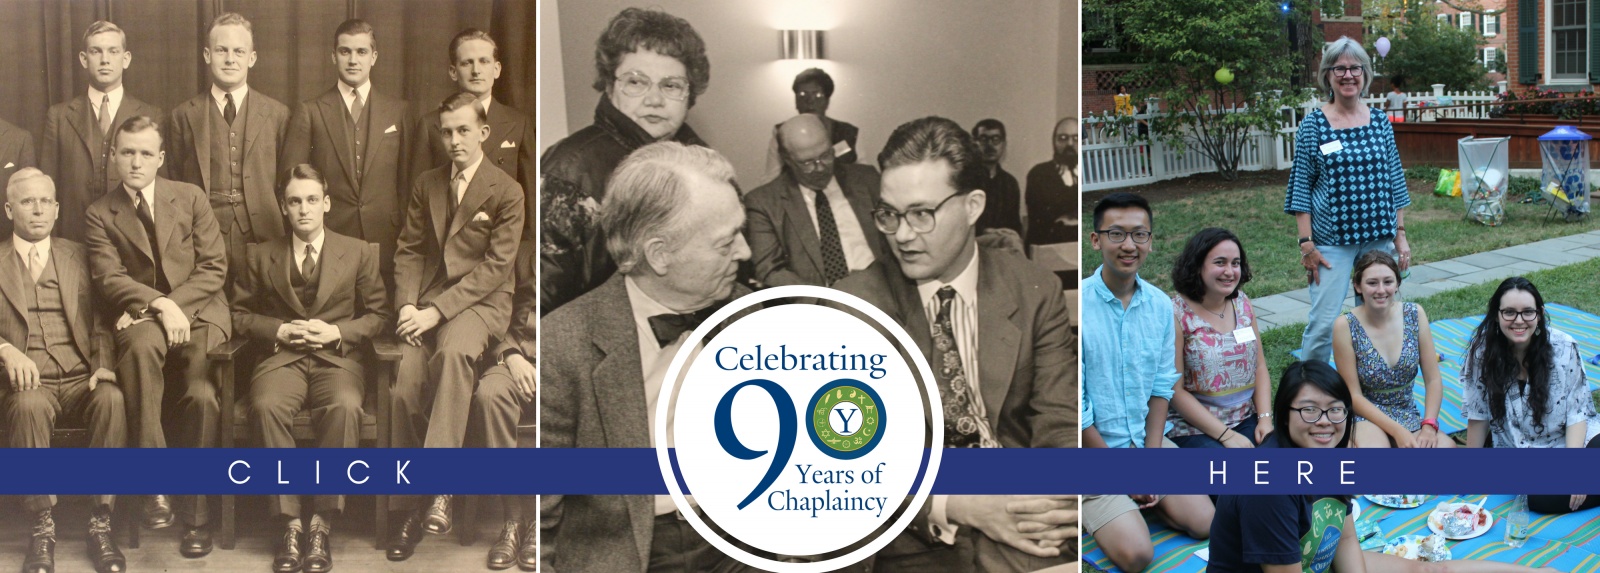 Celebrating 90 Years of Chaplaincy